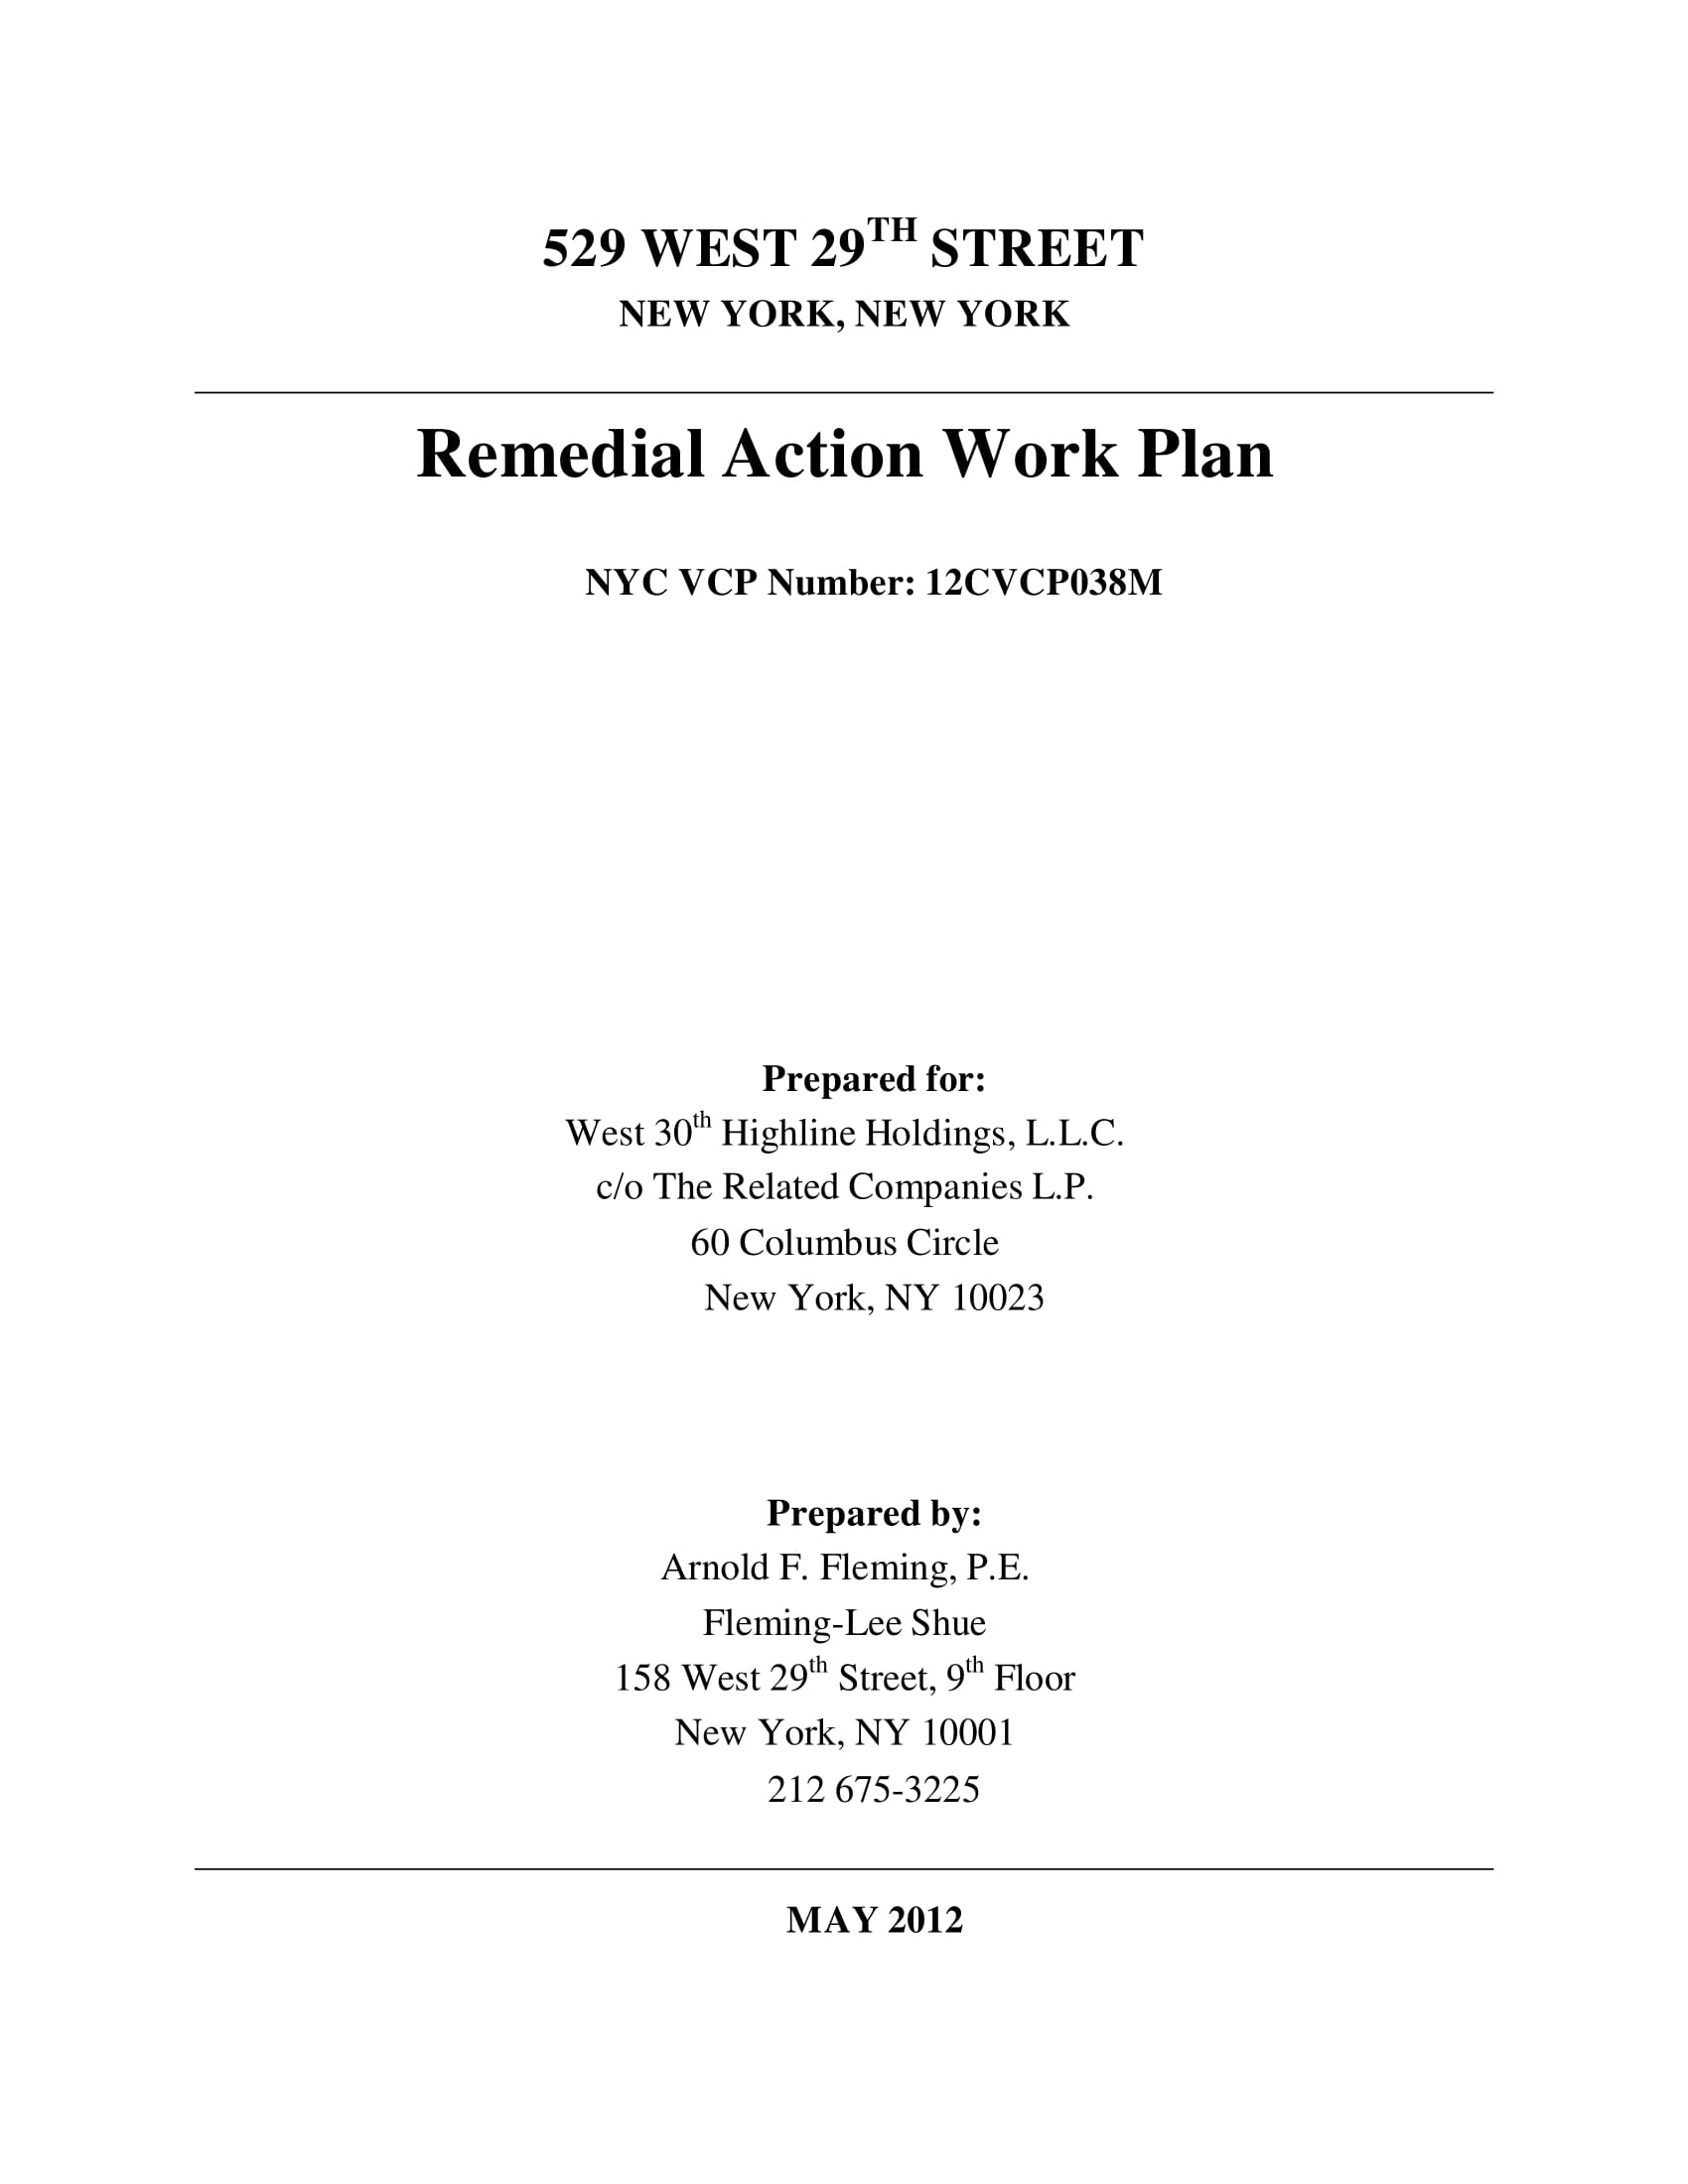 remedial action work plan example 001